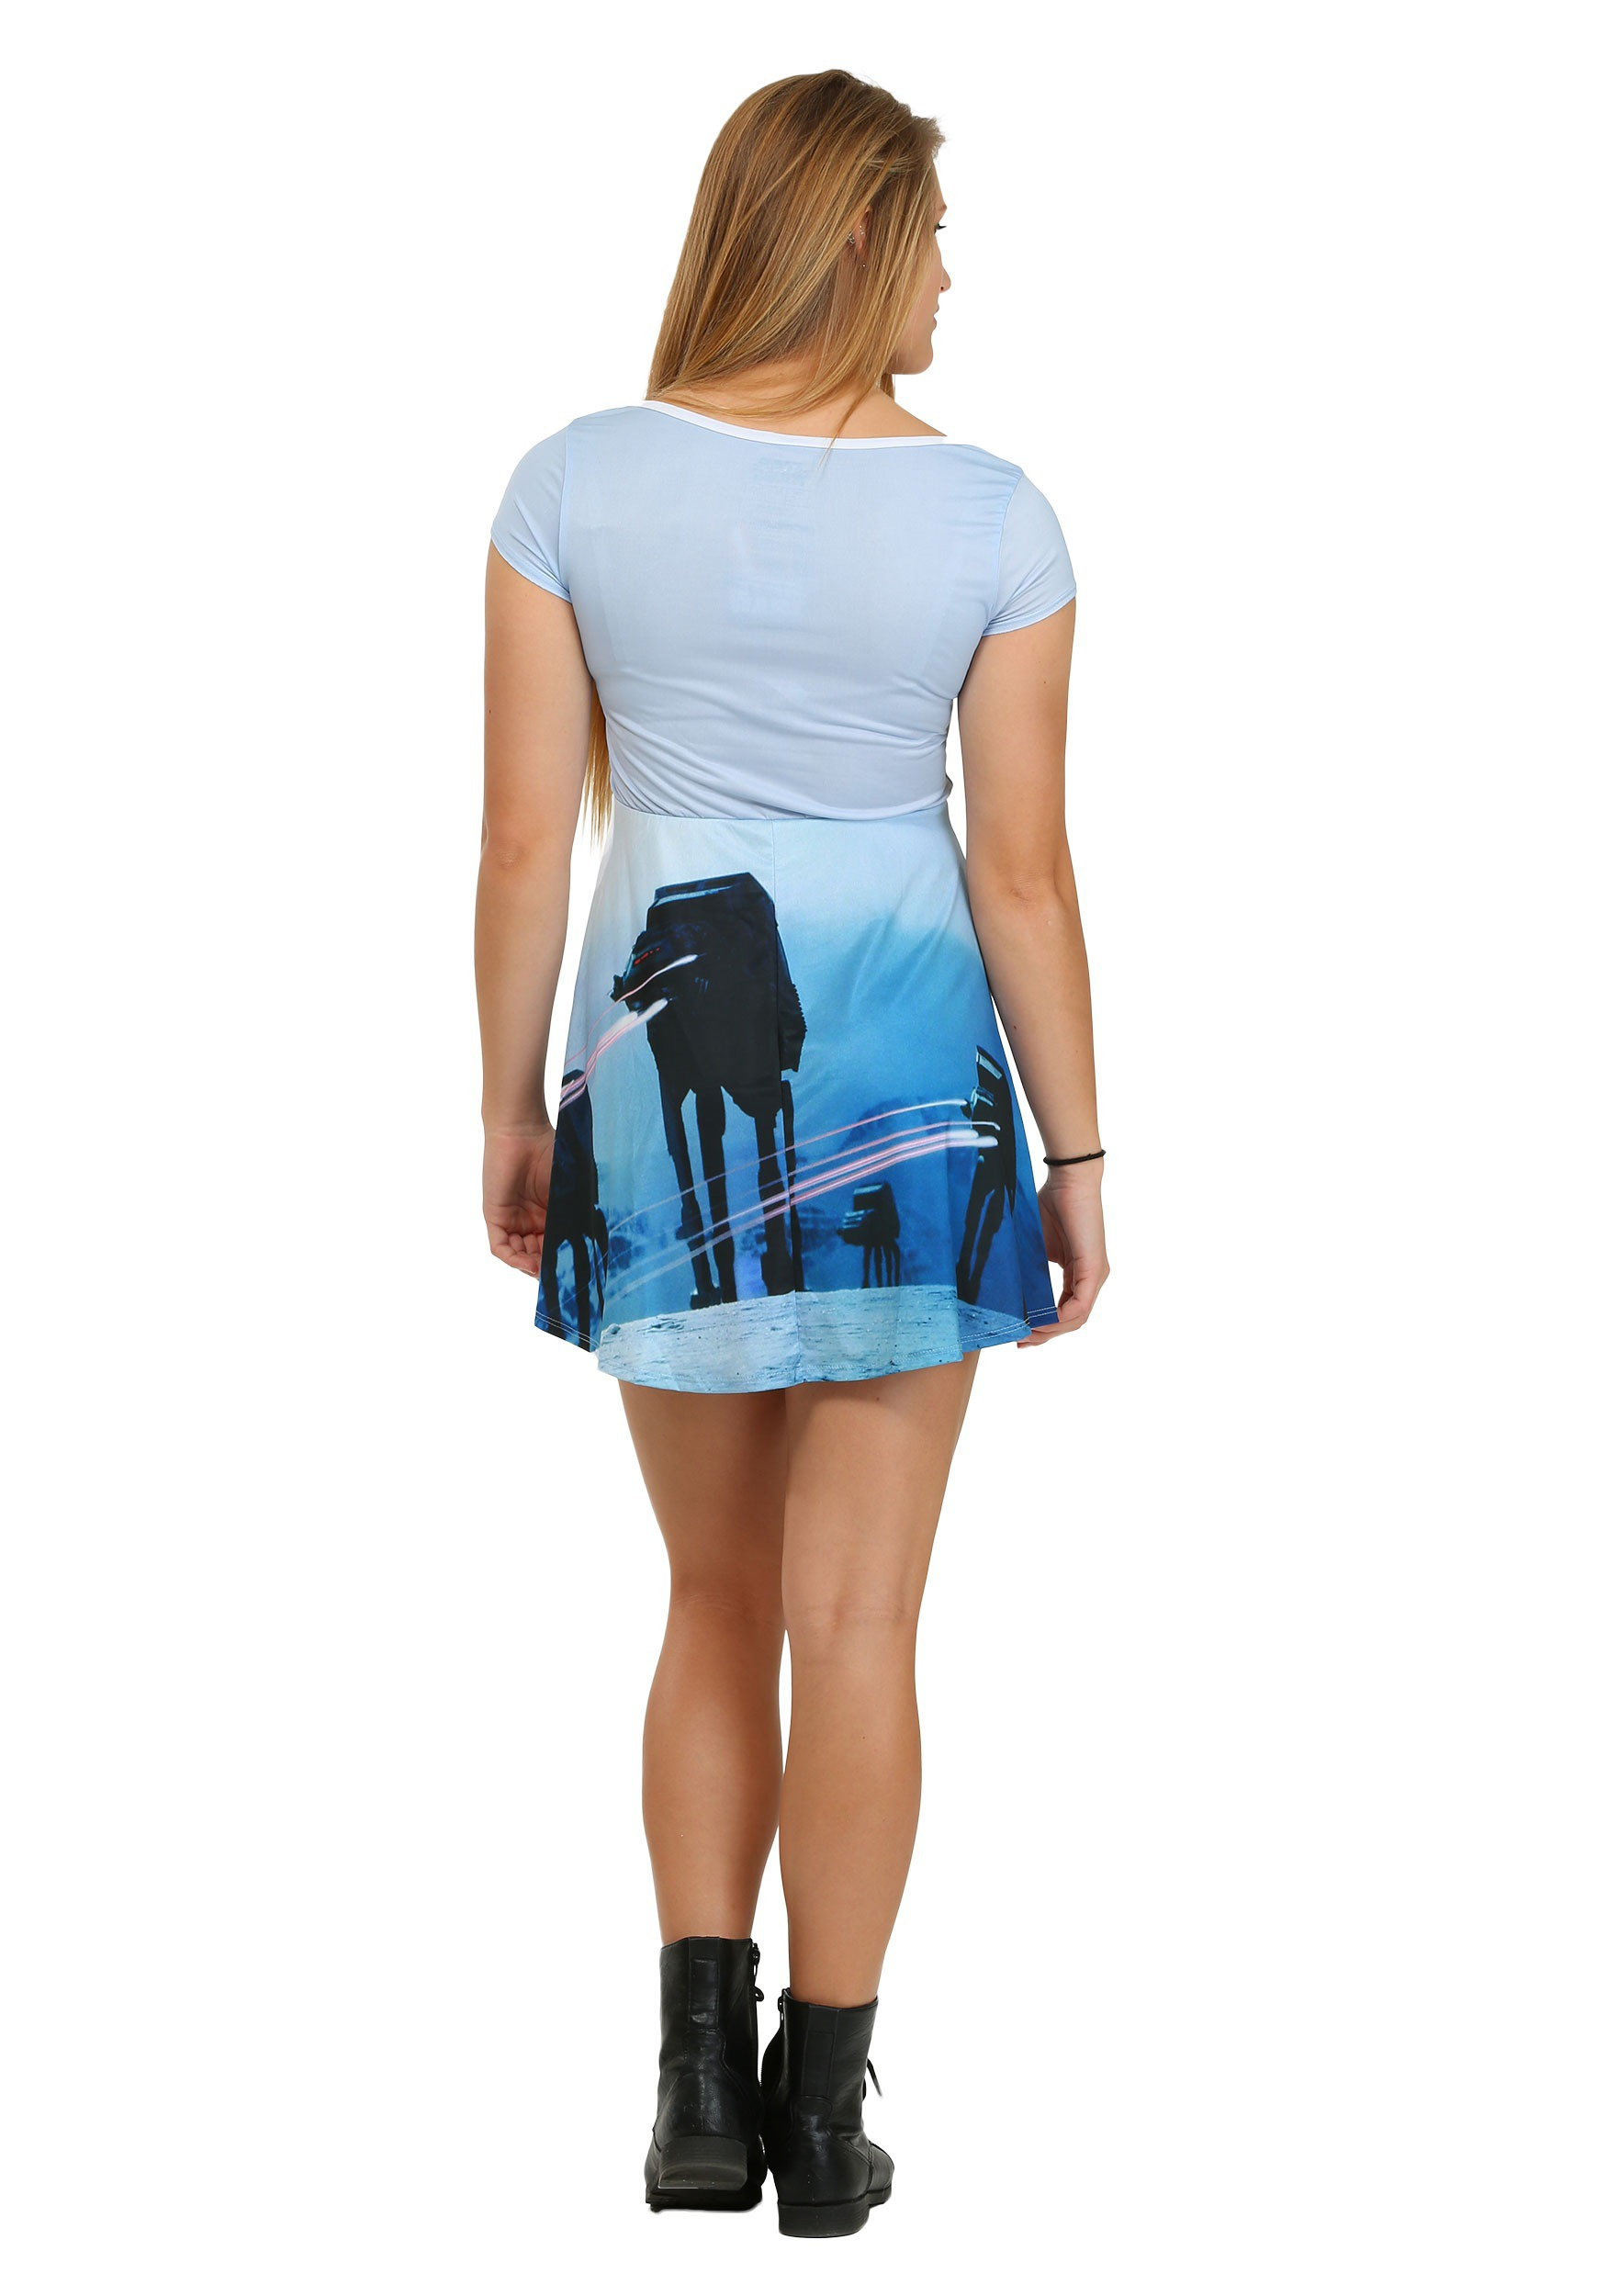 756344019f Star Wars Pew Pew AT-AT Juniors Skater Dress2